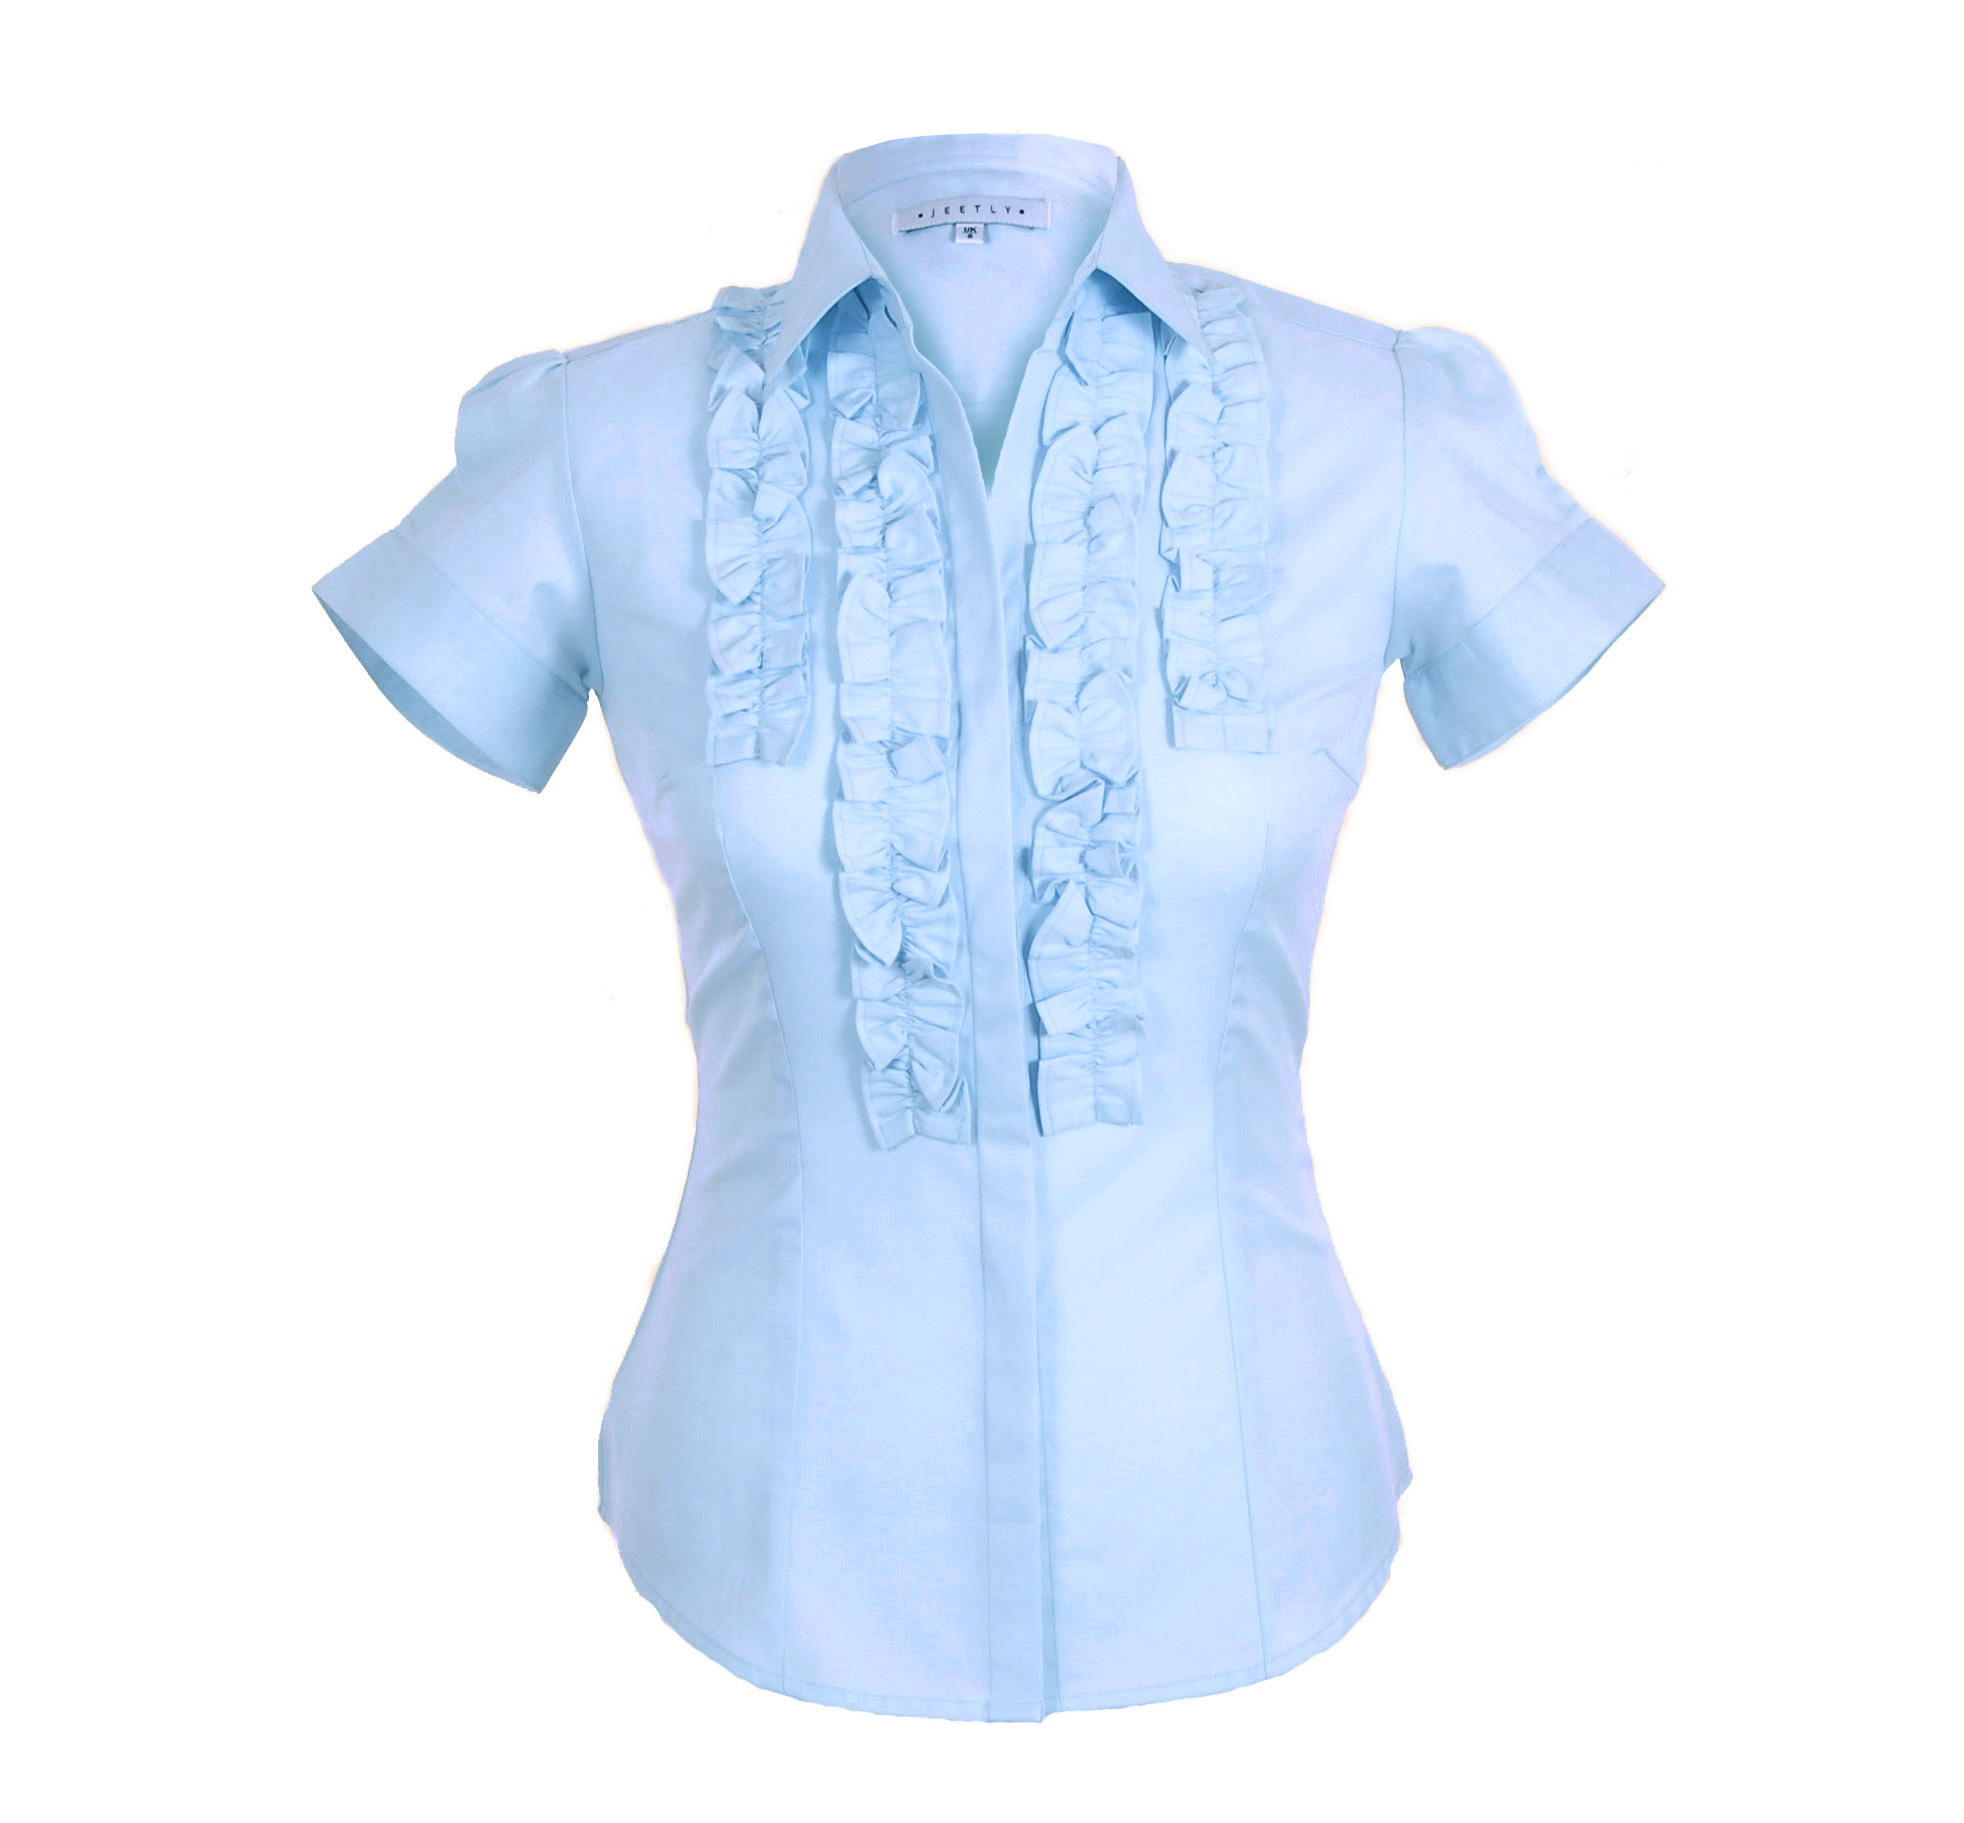 You searched for: blue ruffled shirt! Etsy is the home to thousands of handmade, vintage, and one-of-a-kind products and gifts related to your search. No matter what you're looking for or where you are in the world, our global marketplace of sellers can help you find unique and affordable options. Let's get started!